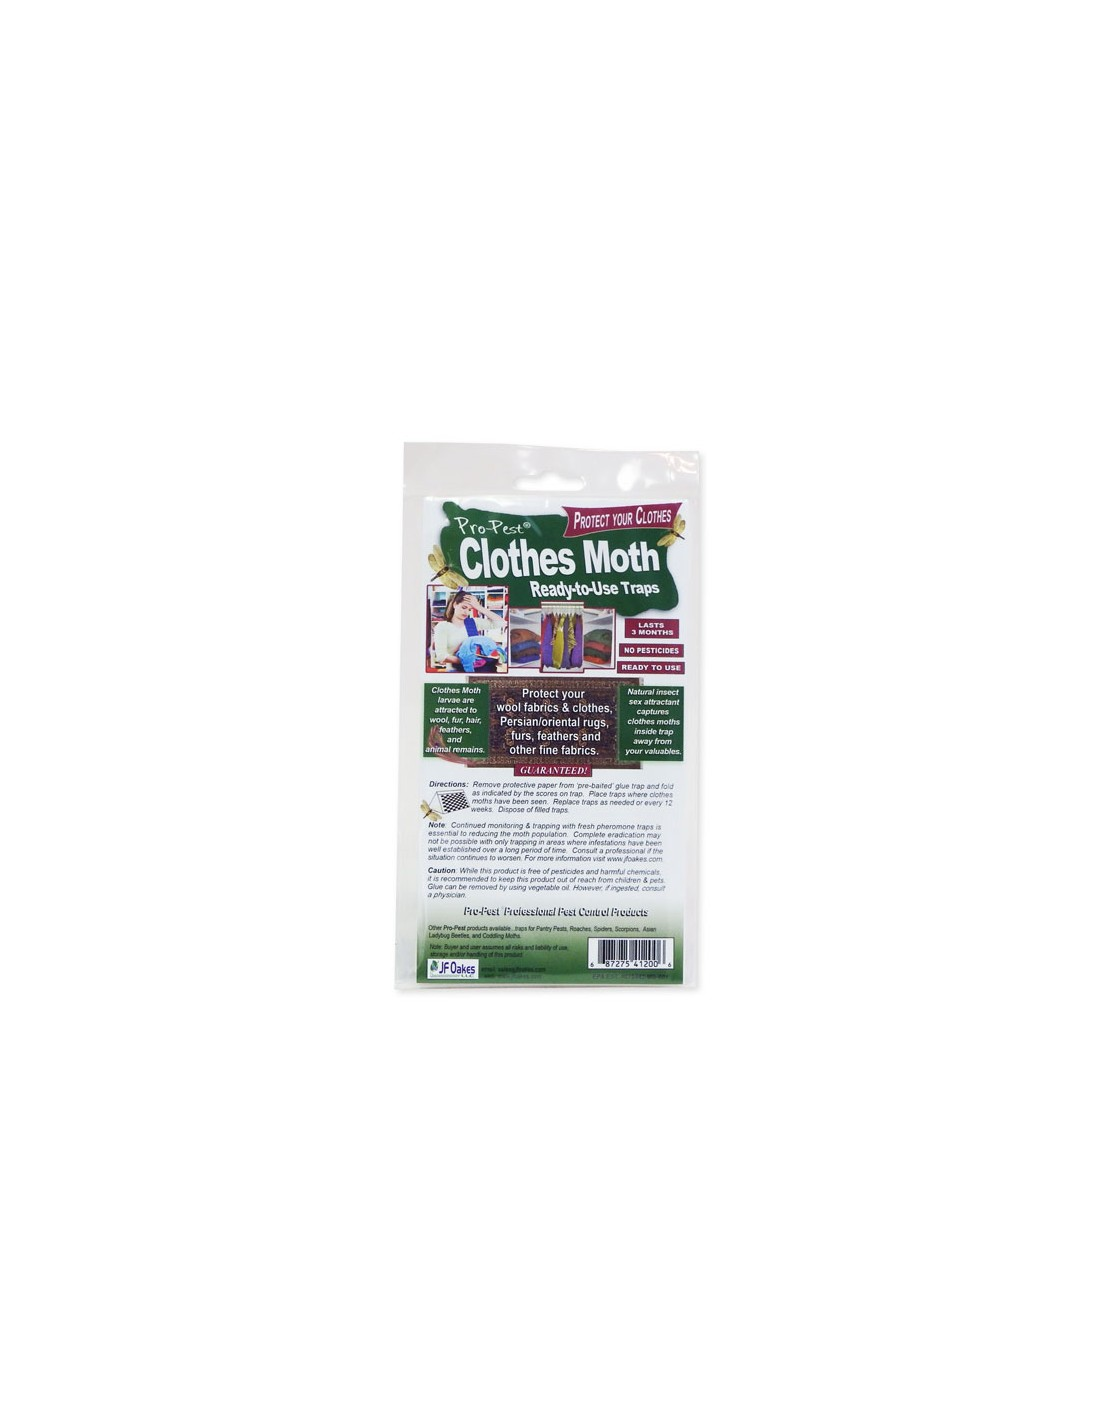 DOES THIS TRAP SMELL LIKE MOTH BALLS  I WOULD LIKE TO SIT THEM ON MY CLOTH CLOSET FLOOR OR DO I HANG THEM